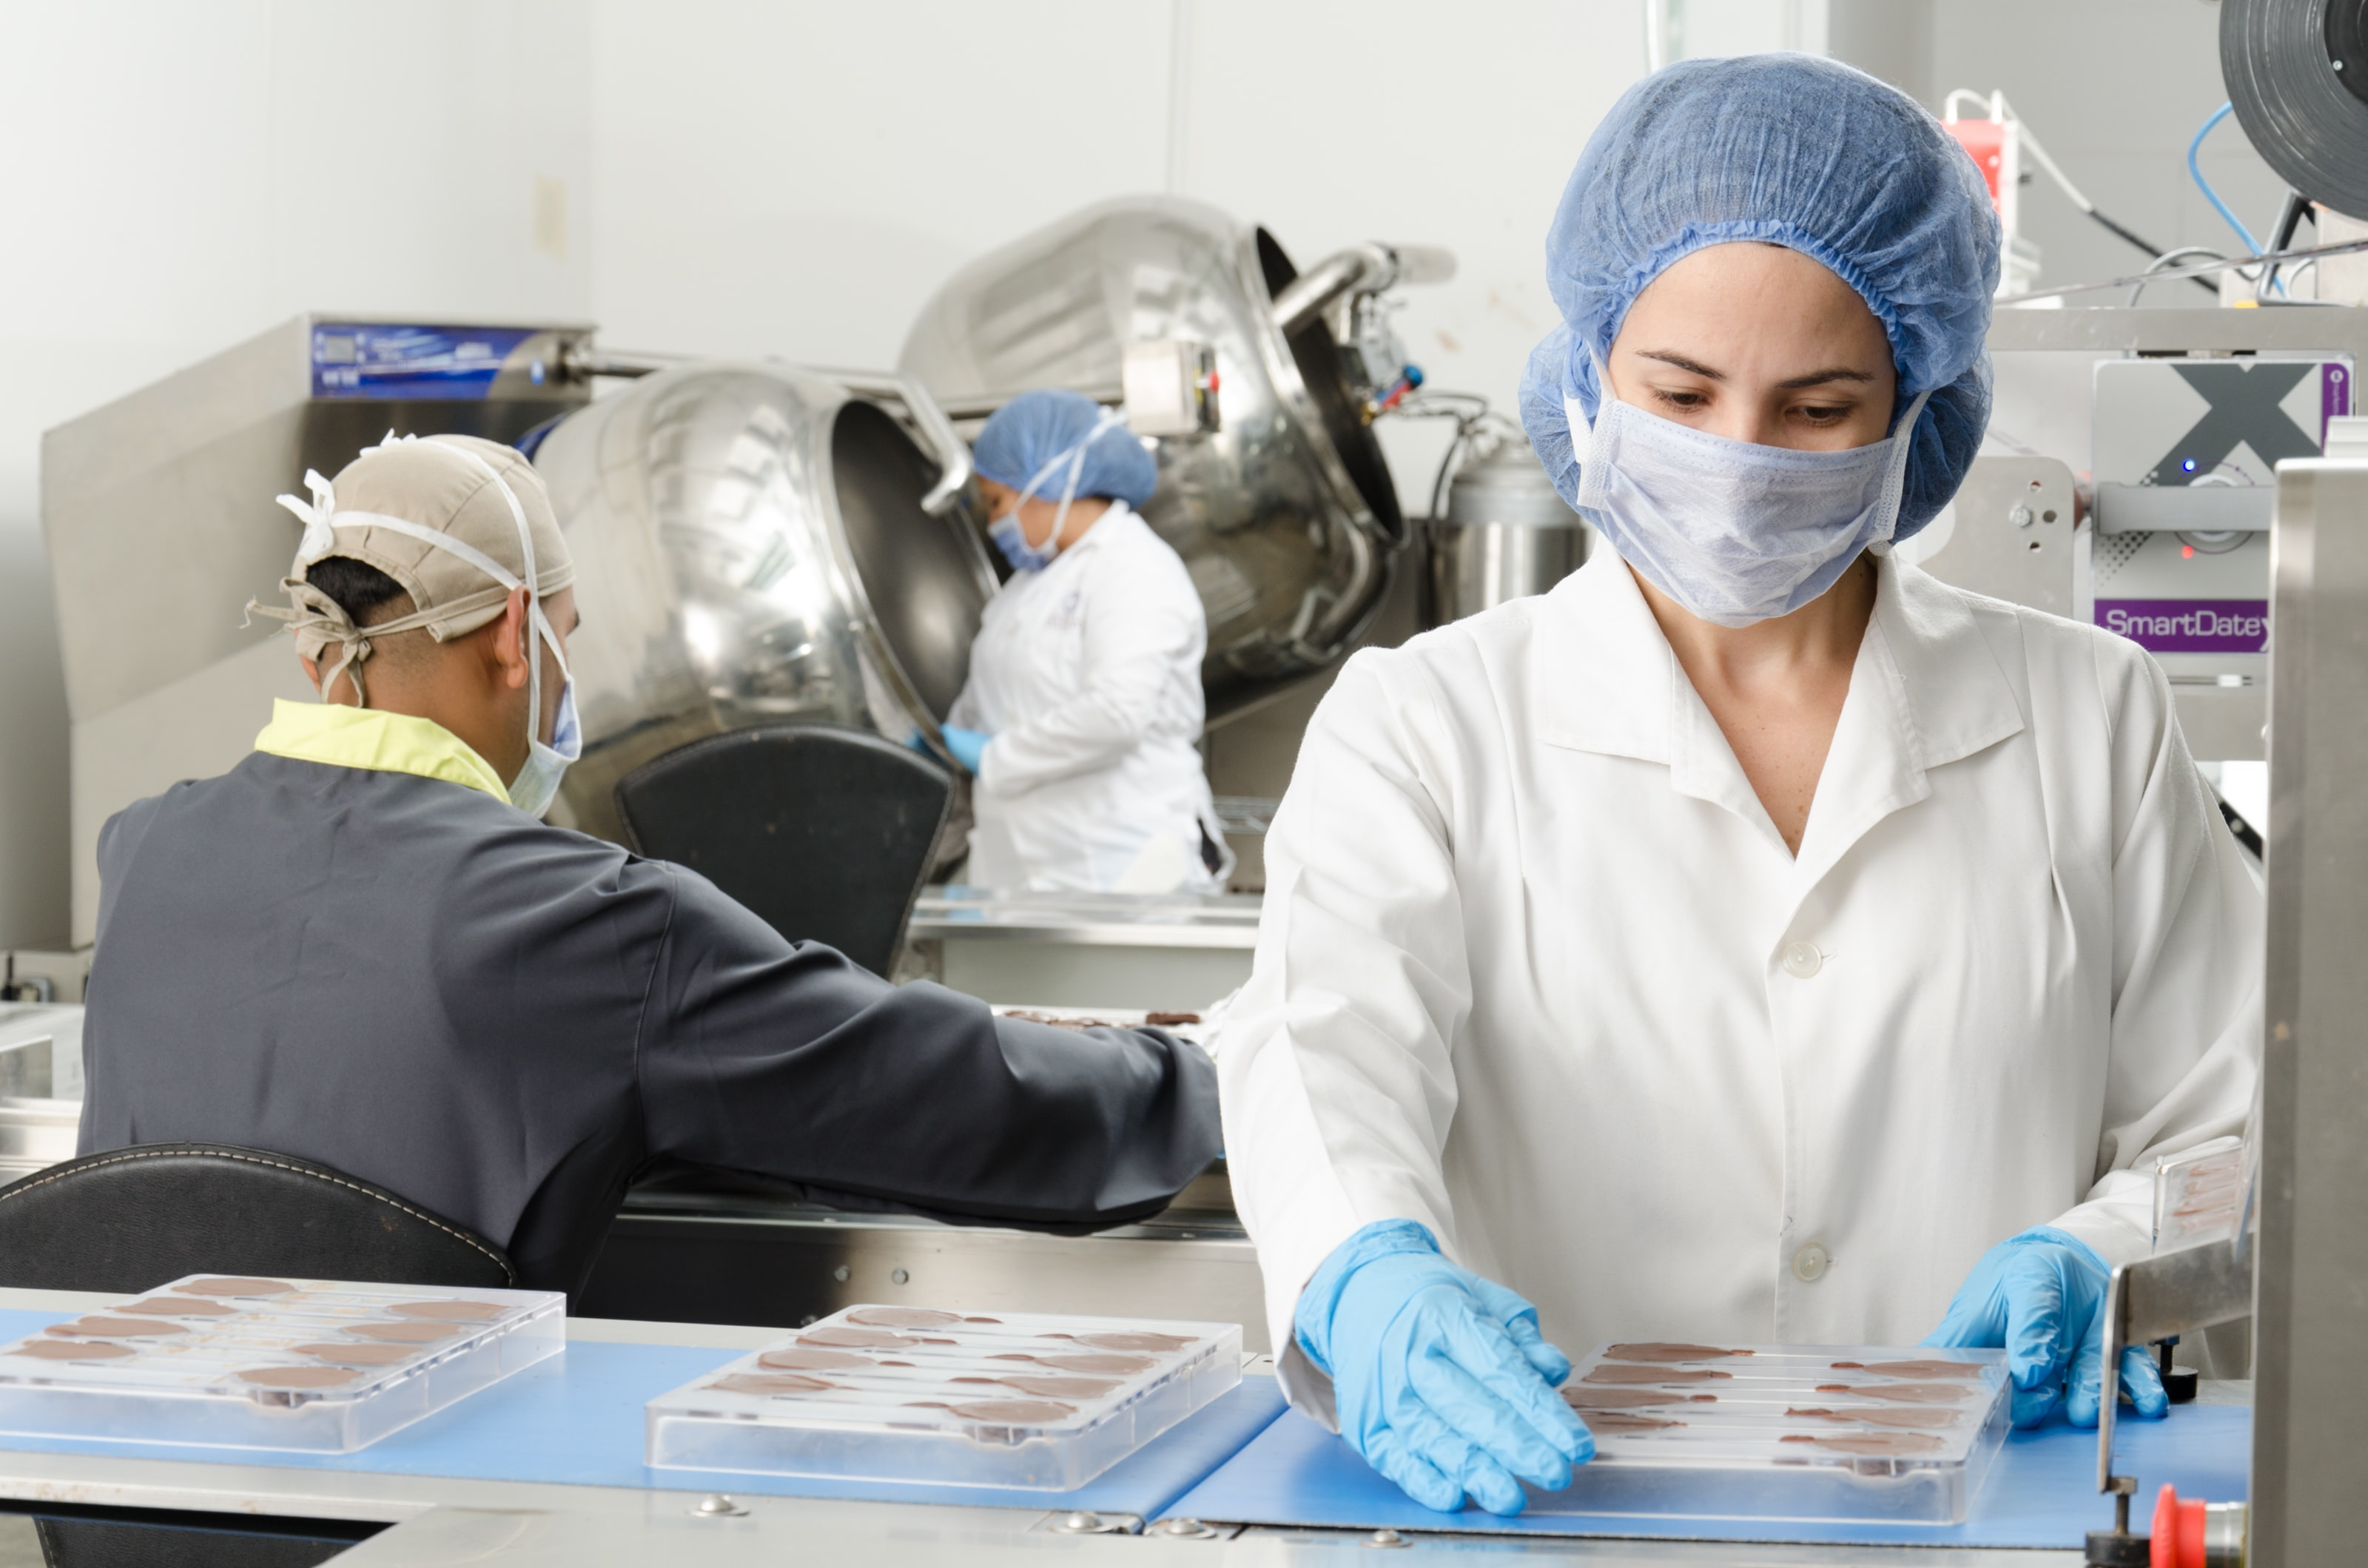 How a Digital Food Safety Specialist Makes Food Safety 500x Faster and 15x Cheaper Written by Jete Nelke Head of Marketing Fooddocs.com